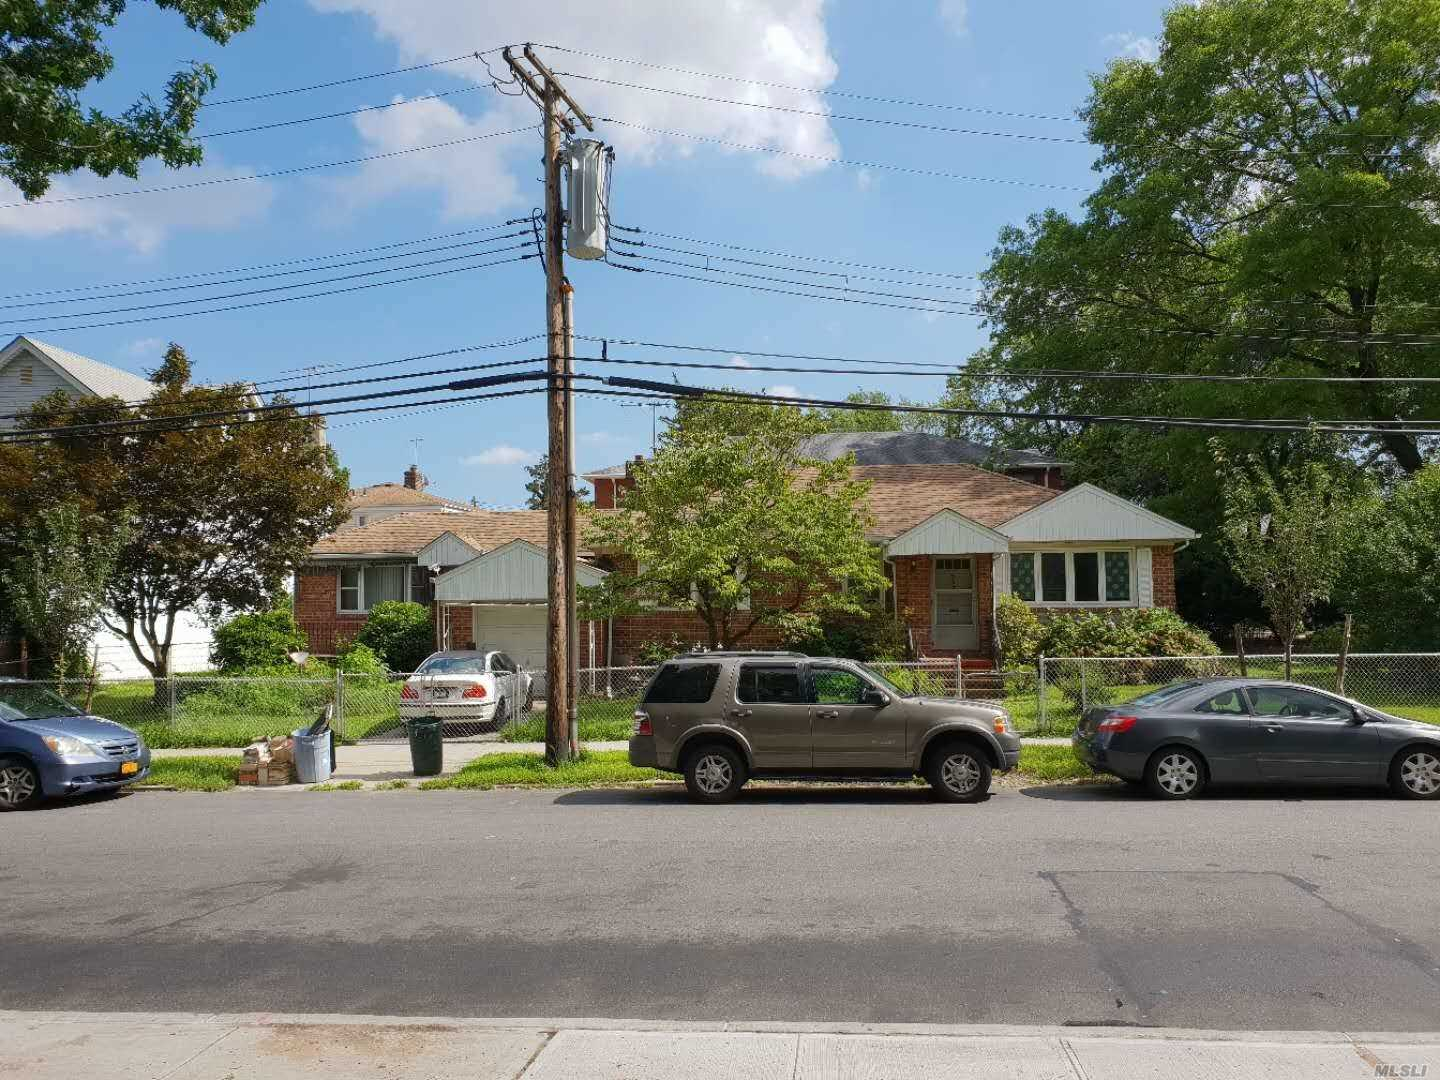 Desirable Area In North Cp,  Detached Ranch Corner House,  Facing Macneil Park,  Mother & Daughter Layout With Full Finished Basement,  On A Lot Of 4500 Sf, Zoning 3A, Lots Of Possibilities;